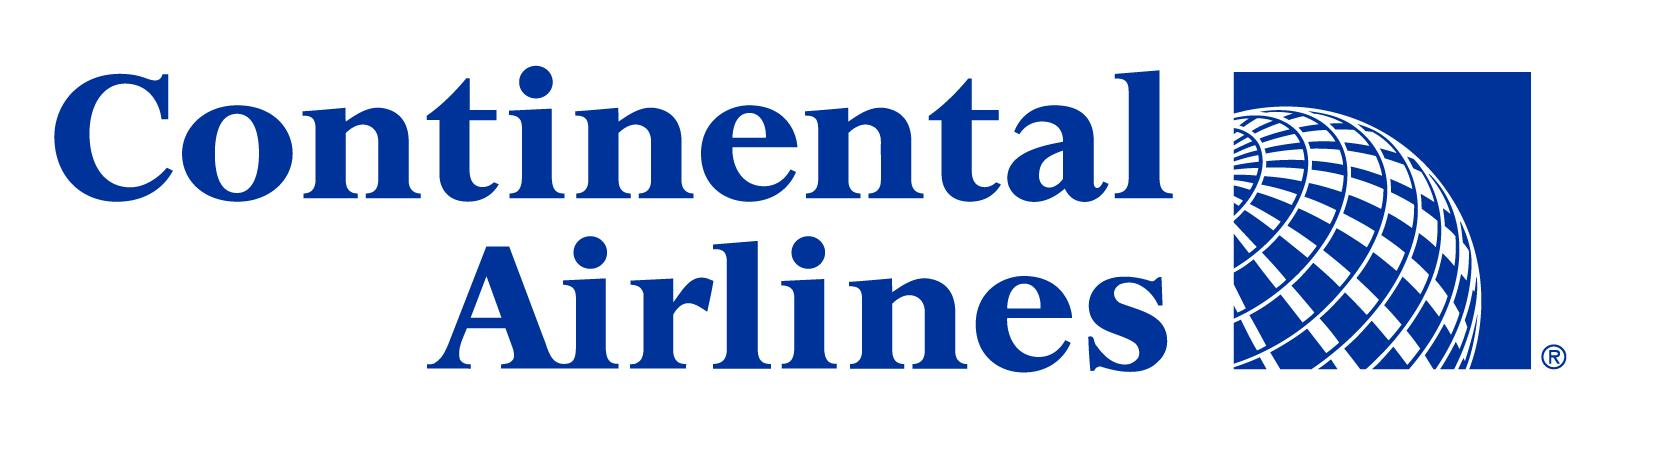 Continental Airlines Reviews Productreview Com Au